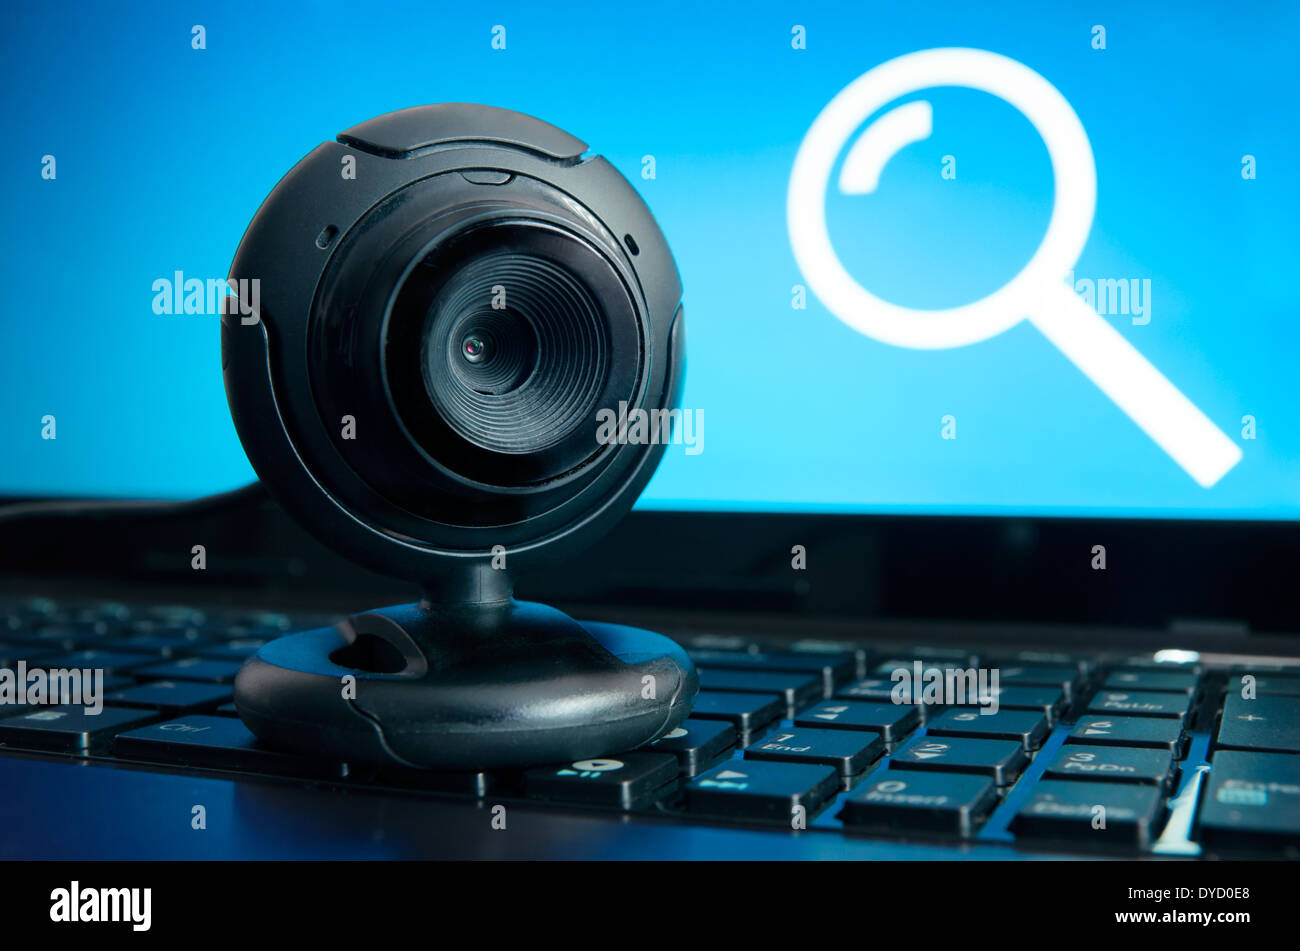 Web surveillance camera. Spying and safety on the Internet - Stock Image